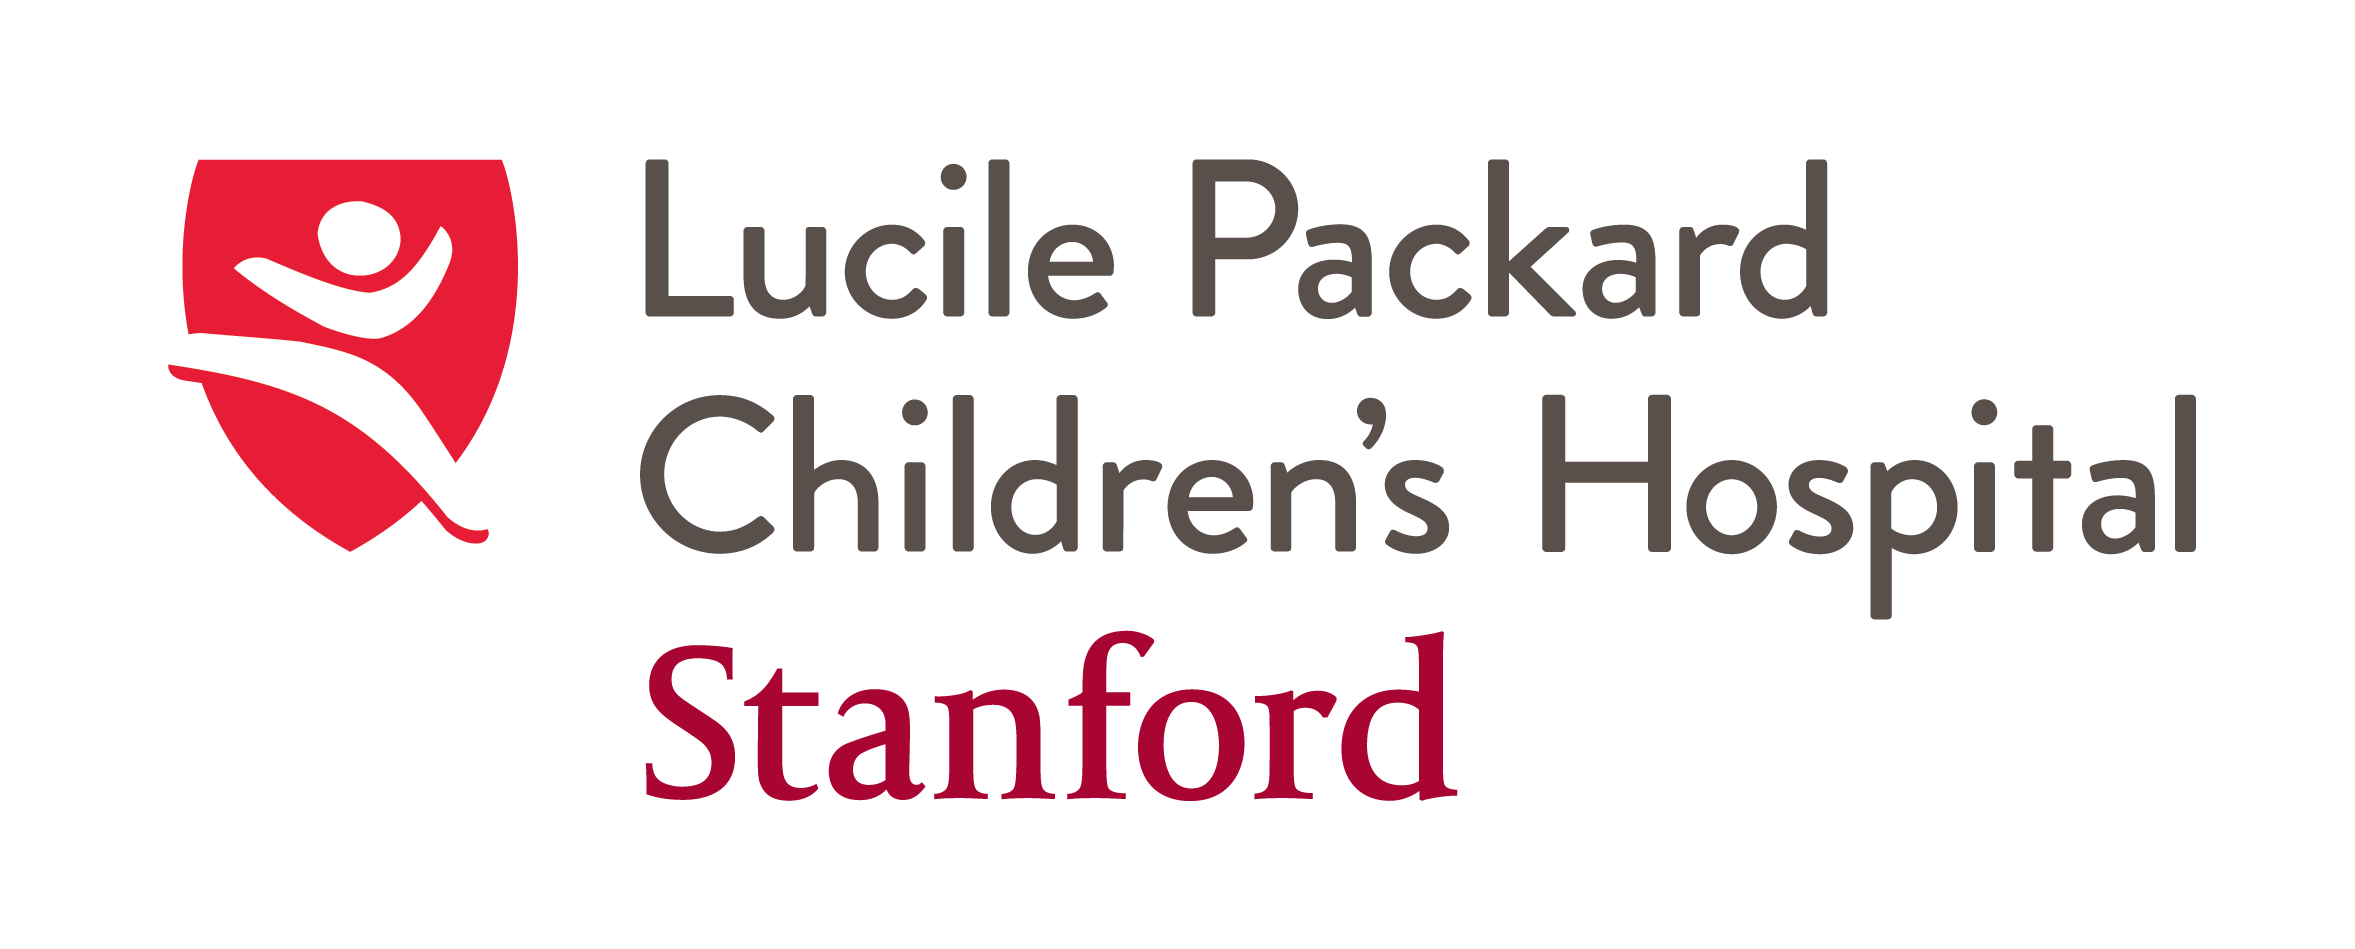 Stanford Childrens Hospital